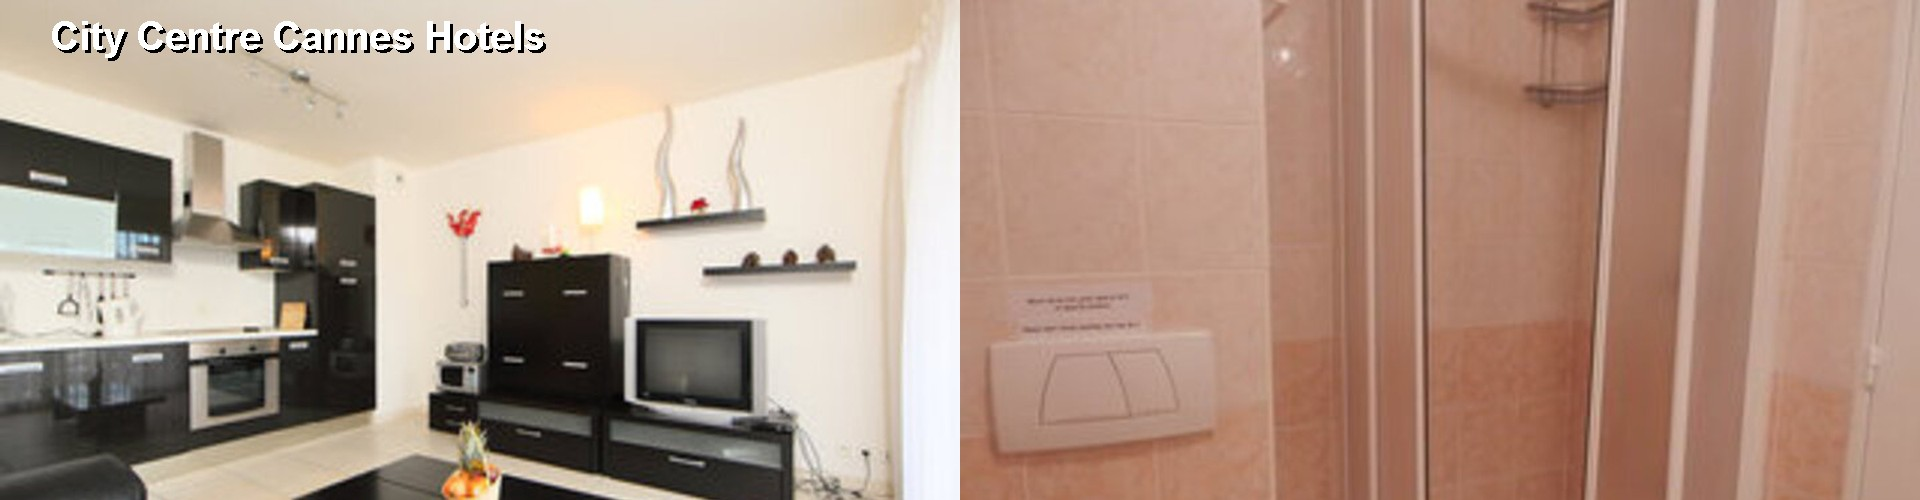 5 Best Hotels near City Centre Cannes